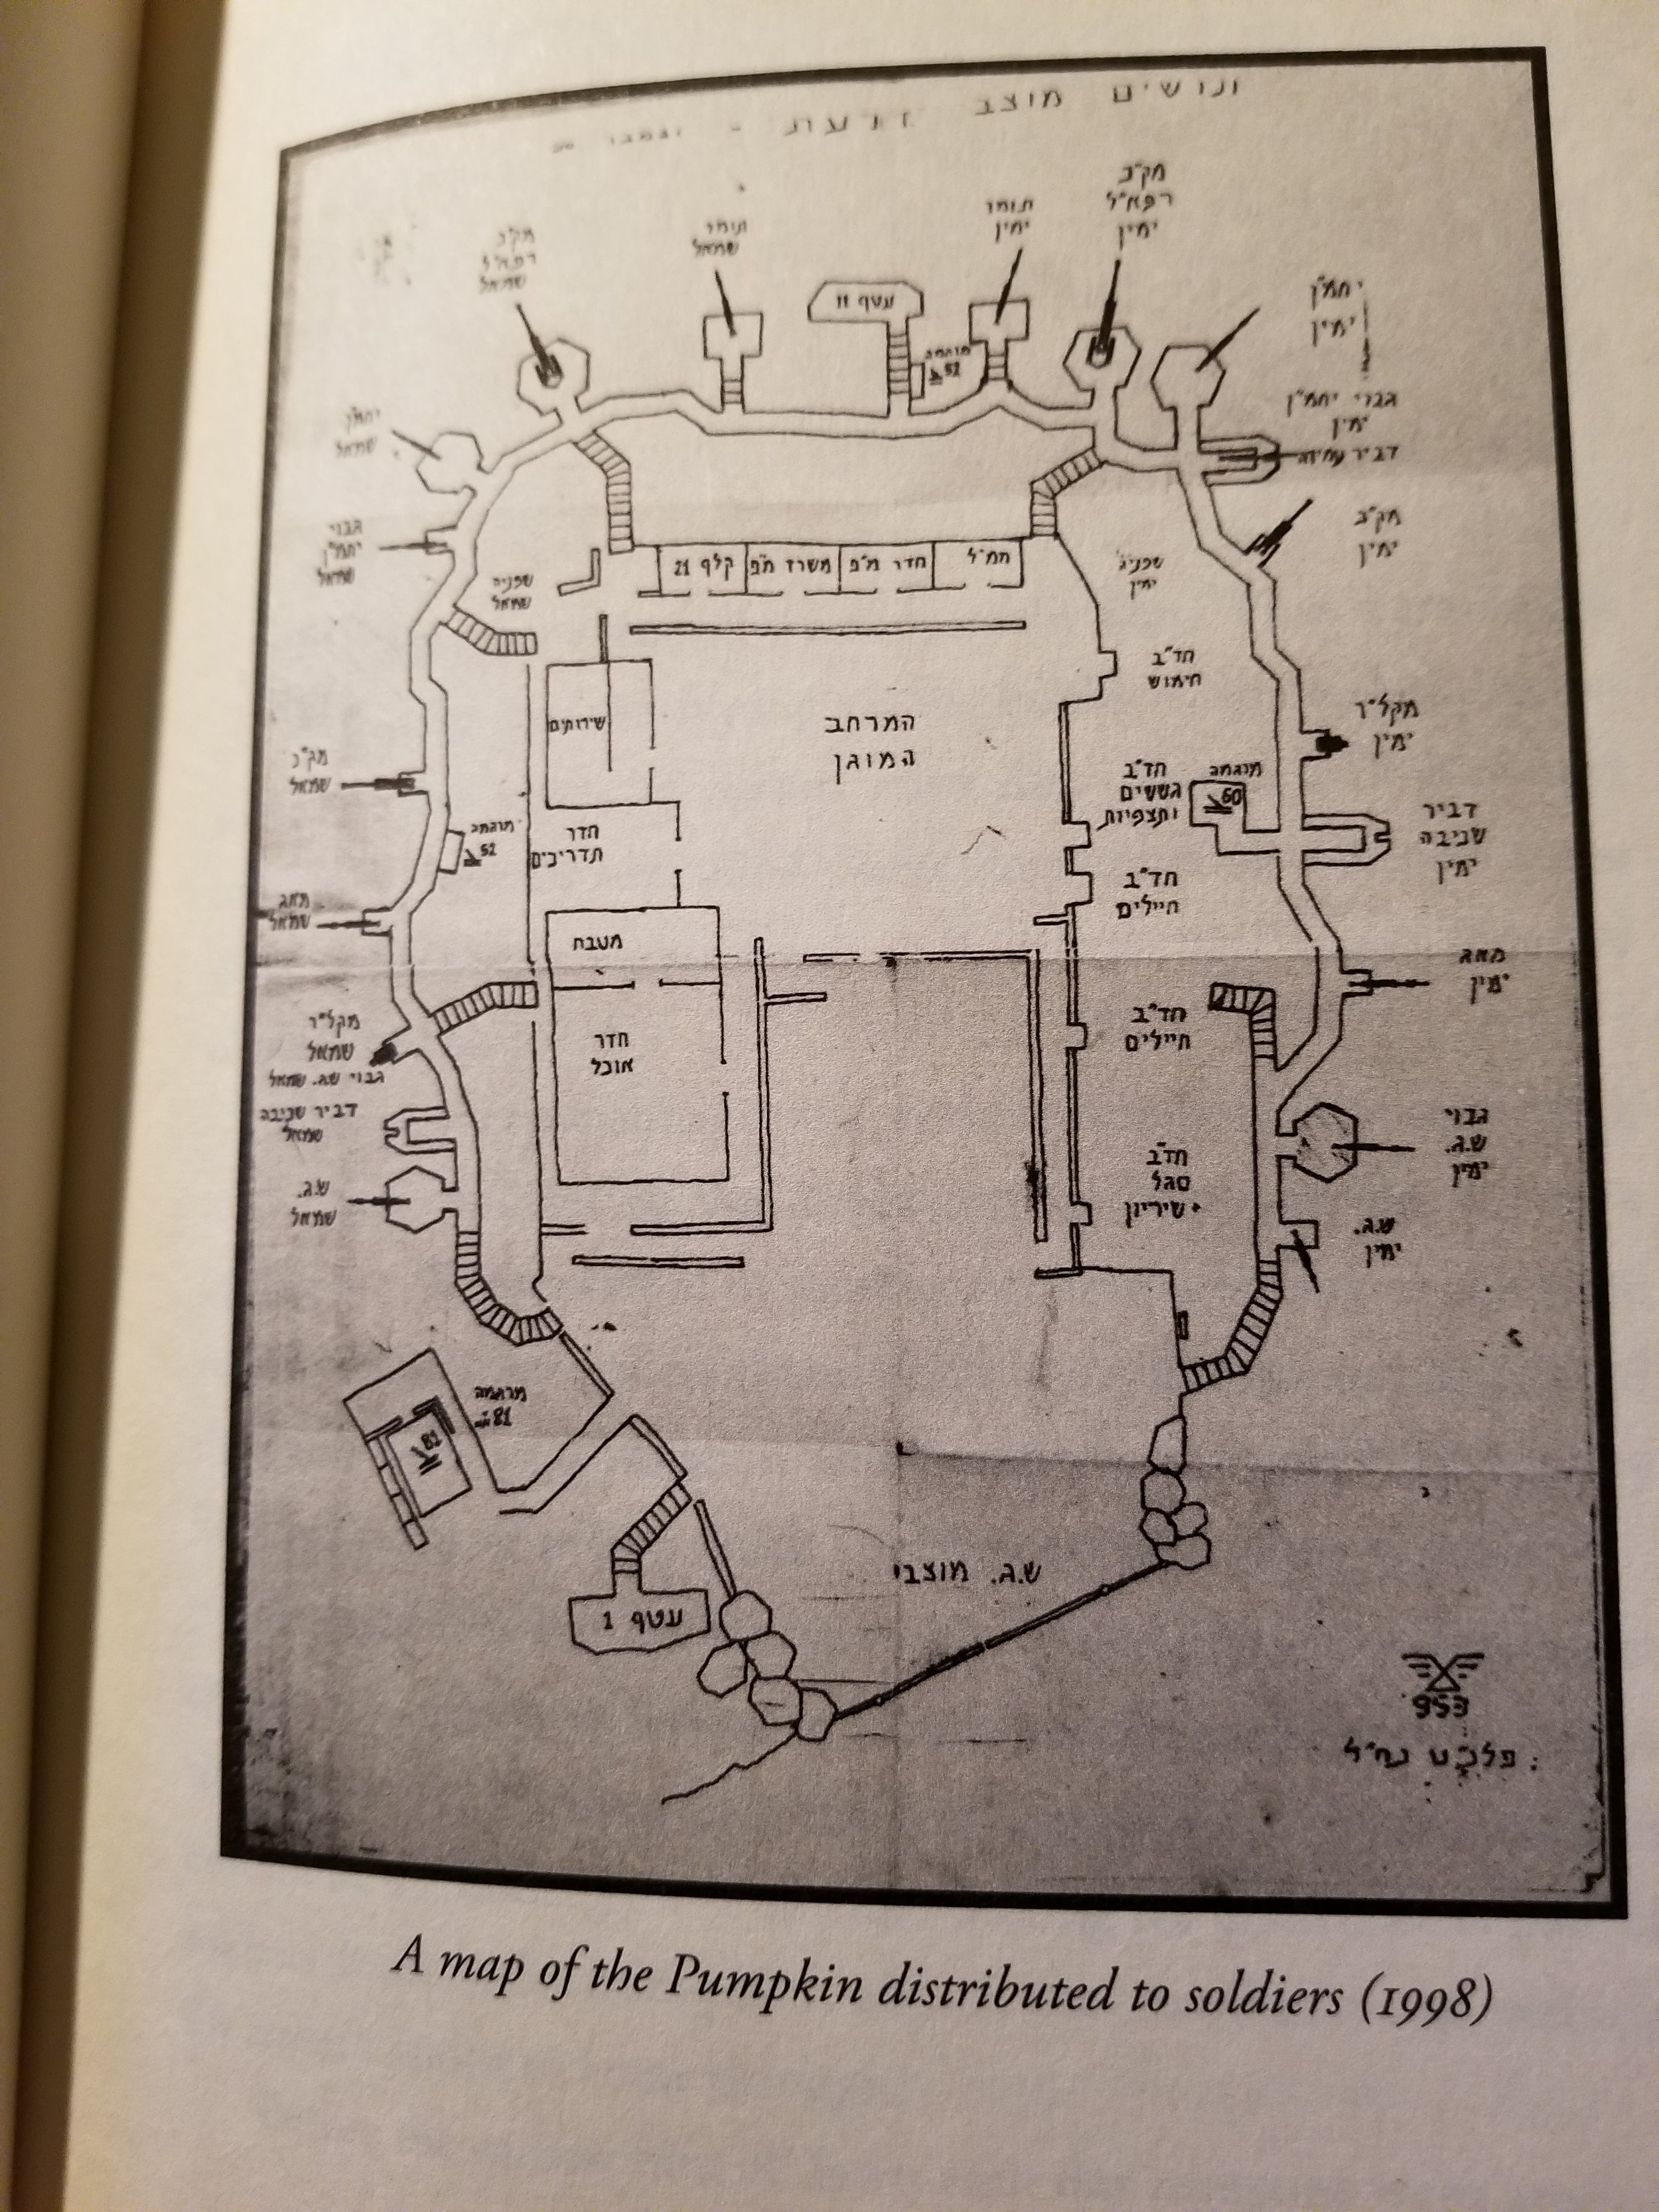 A map of the Pumpkin, from the front matter of Pumpkinflowers. There weren't enough maps for my taste in the book.